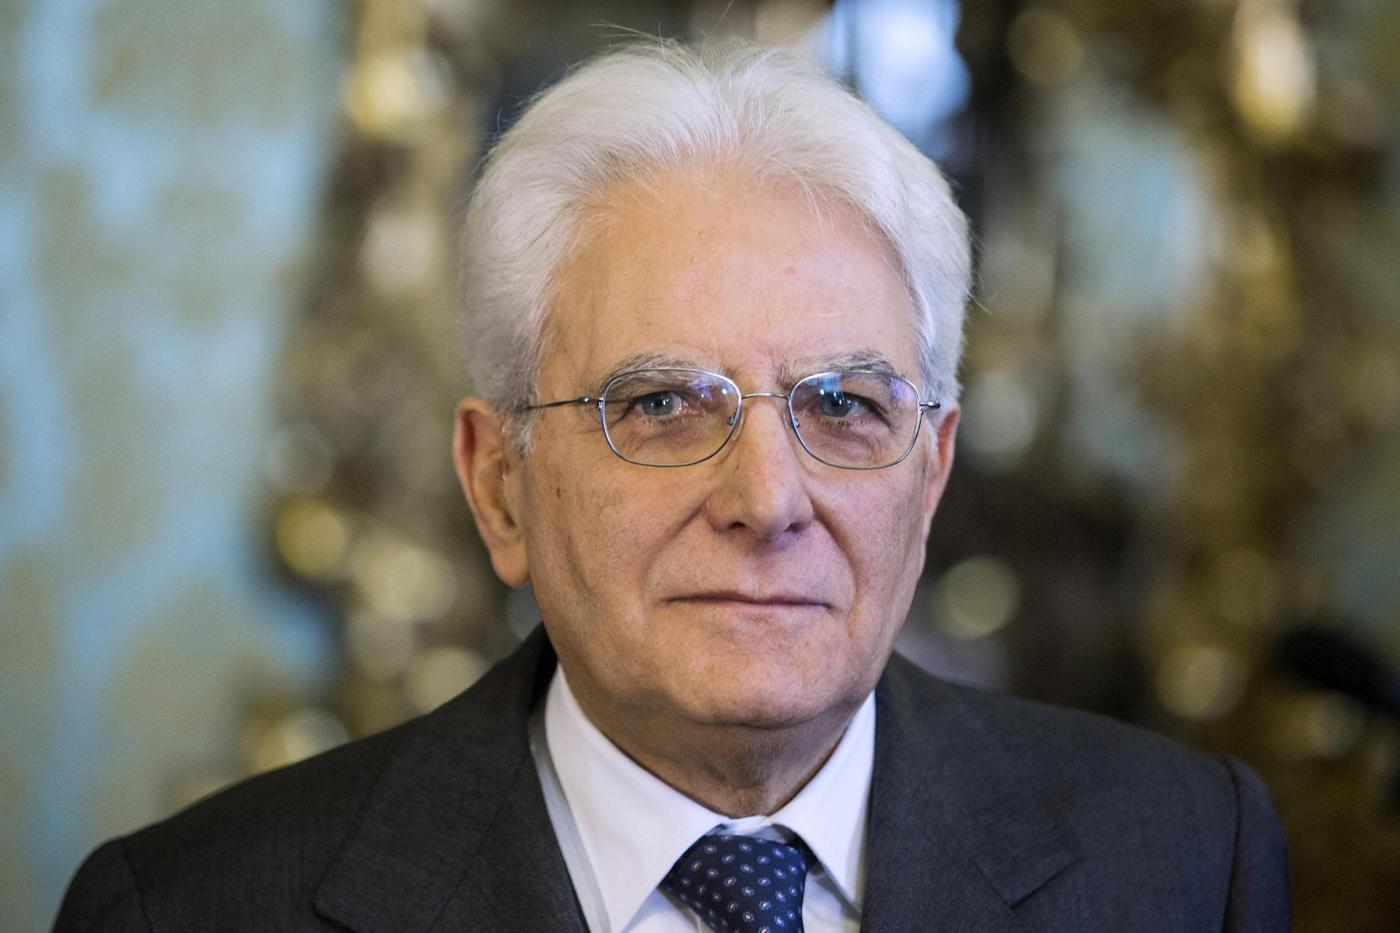 Sergio Mattarella earned a  million dollar salary, leaving the net worth at  million in 2017